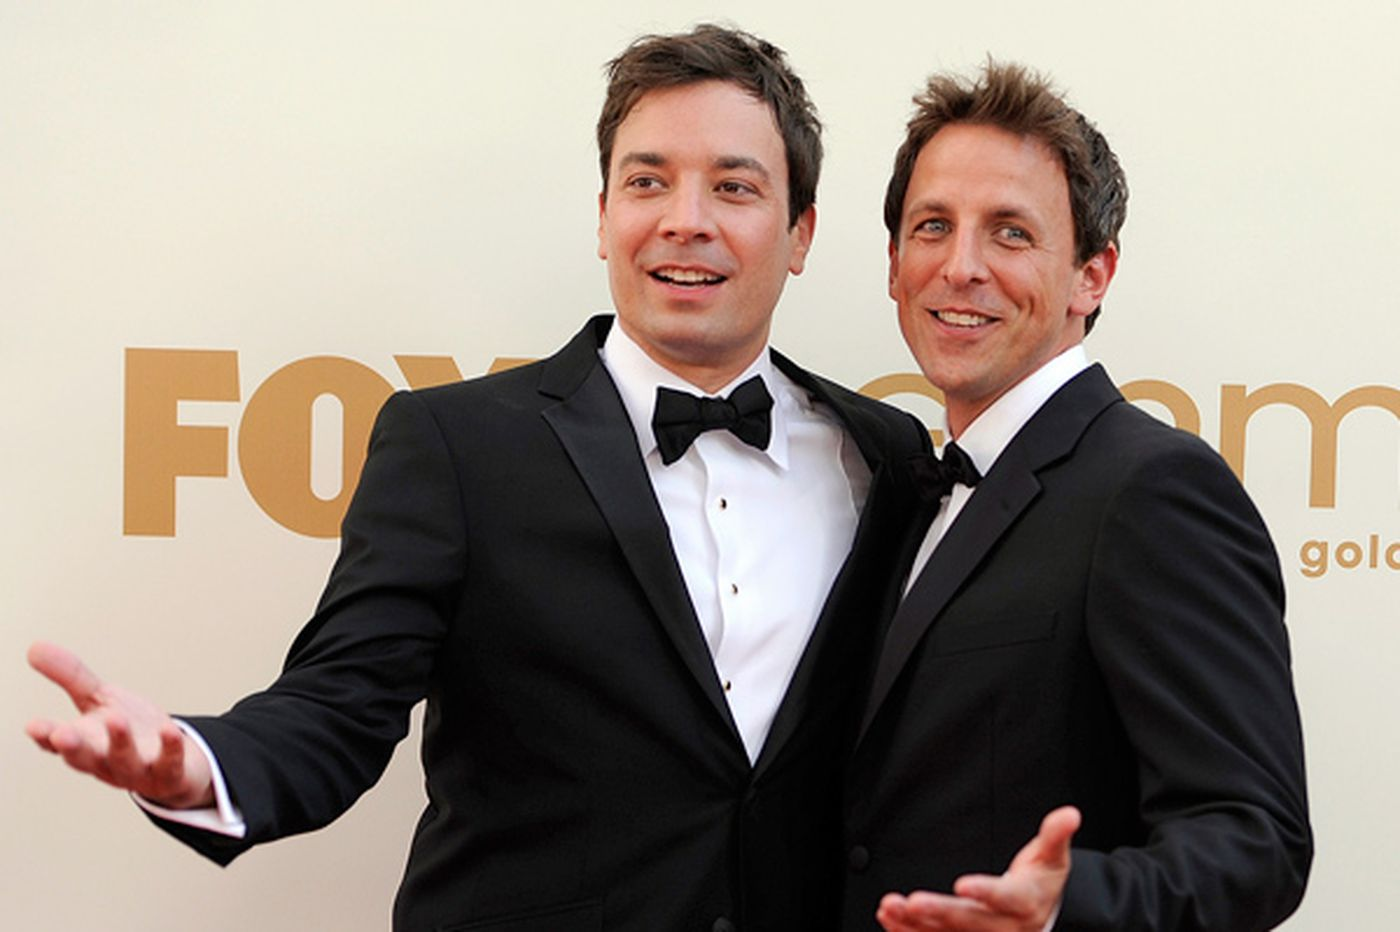 Seth Meyers named Jimmy Fallon's heir